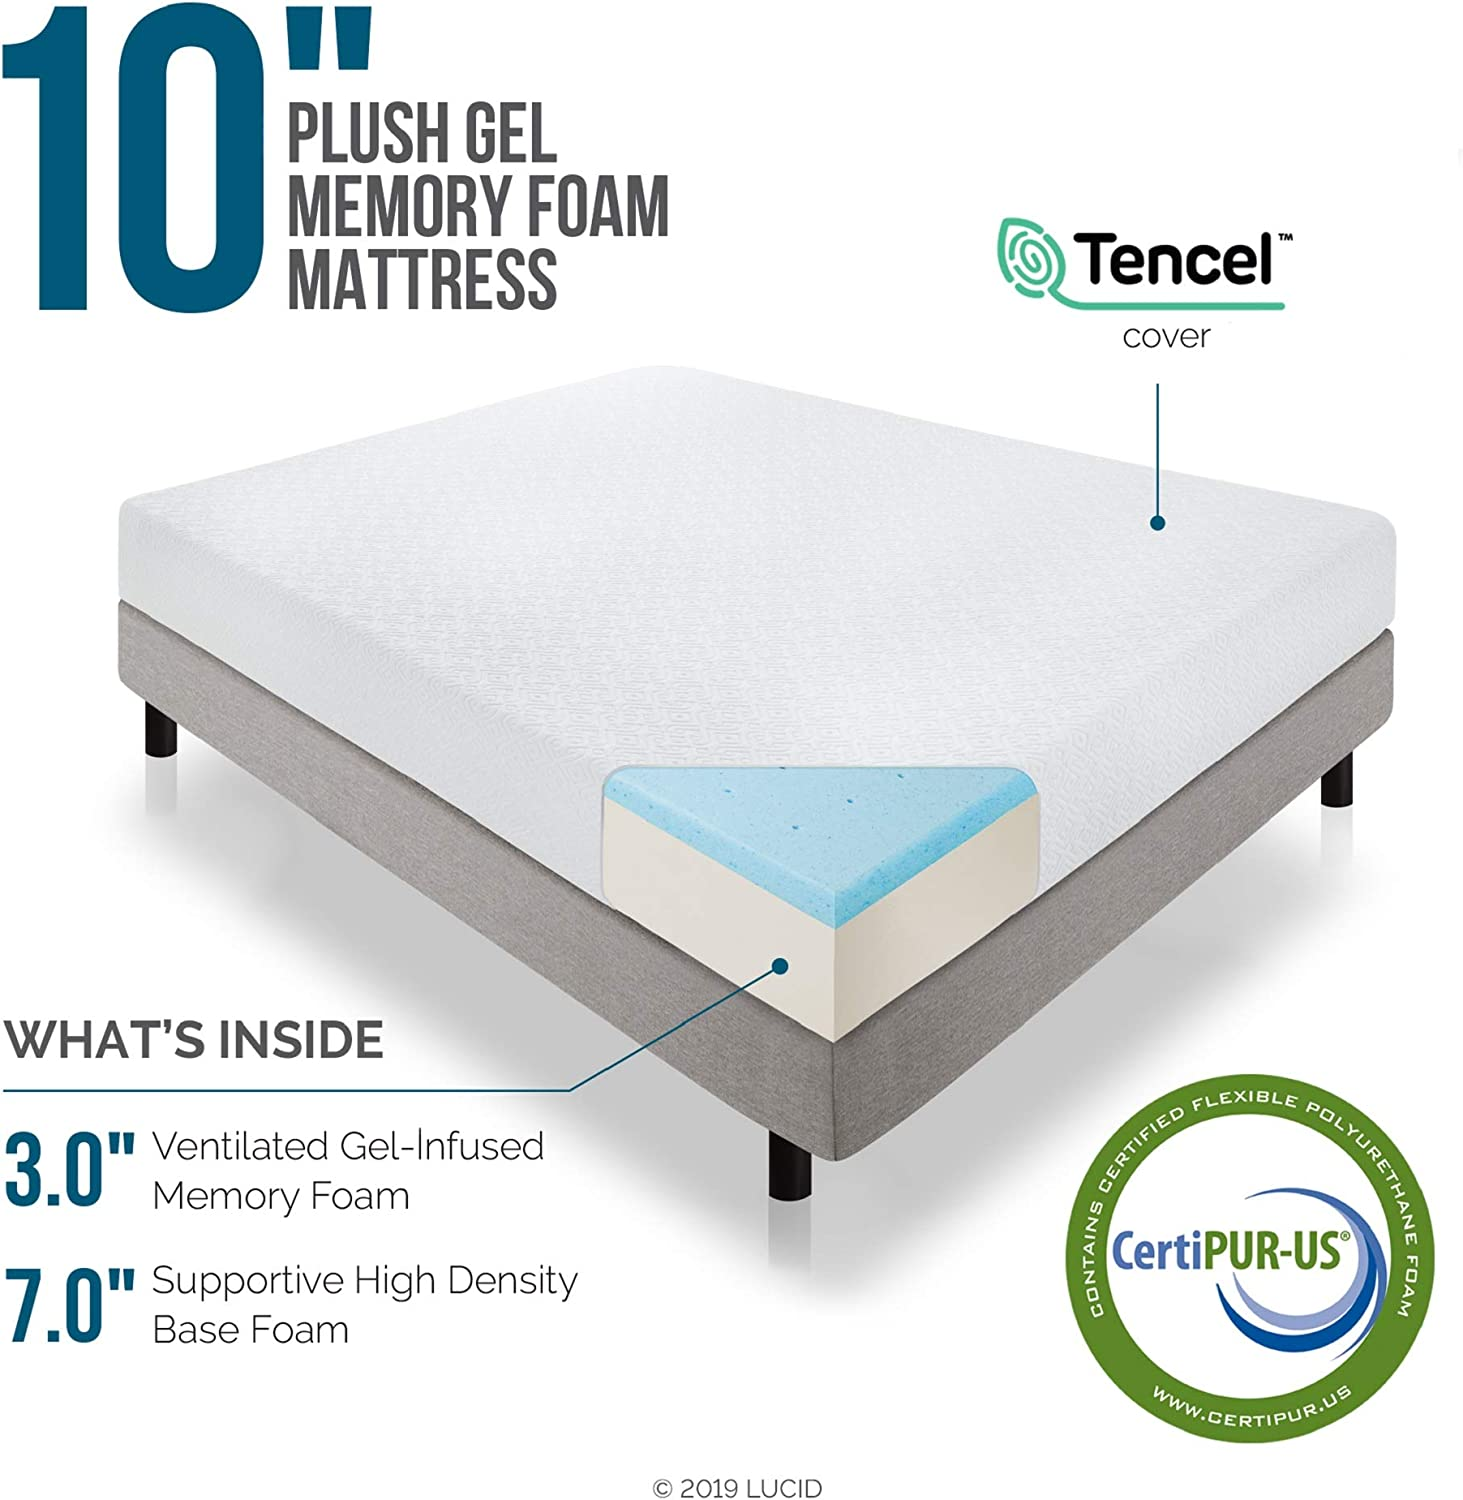 Amazon Com Lucid 10 Inch 2019 Gel Memory Foam Mattress Medium Plush Feel Certipur Us Certified 10 Year Warranty Queen Furniture Decor